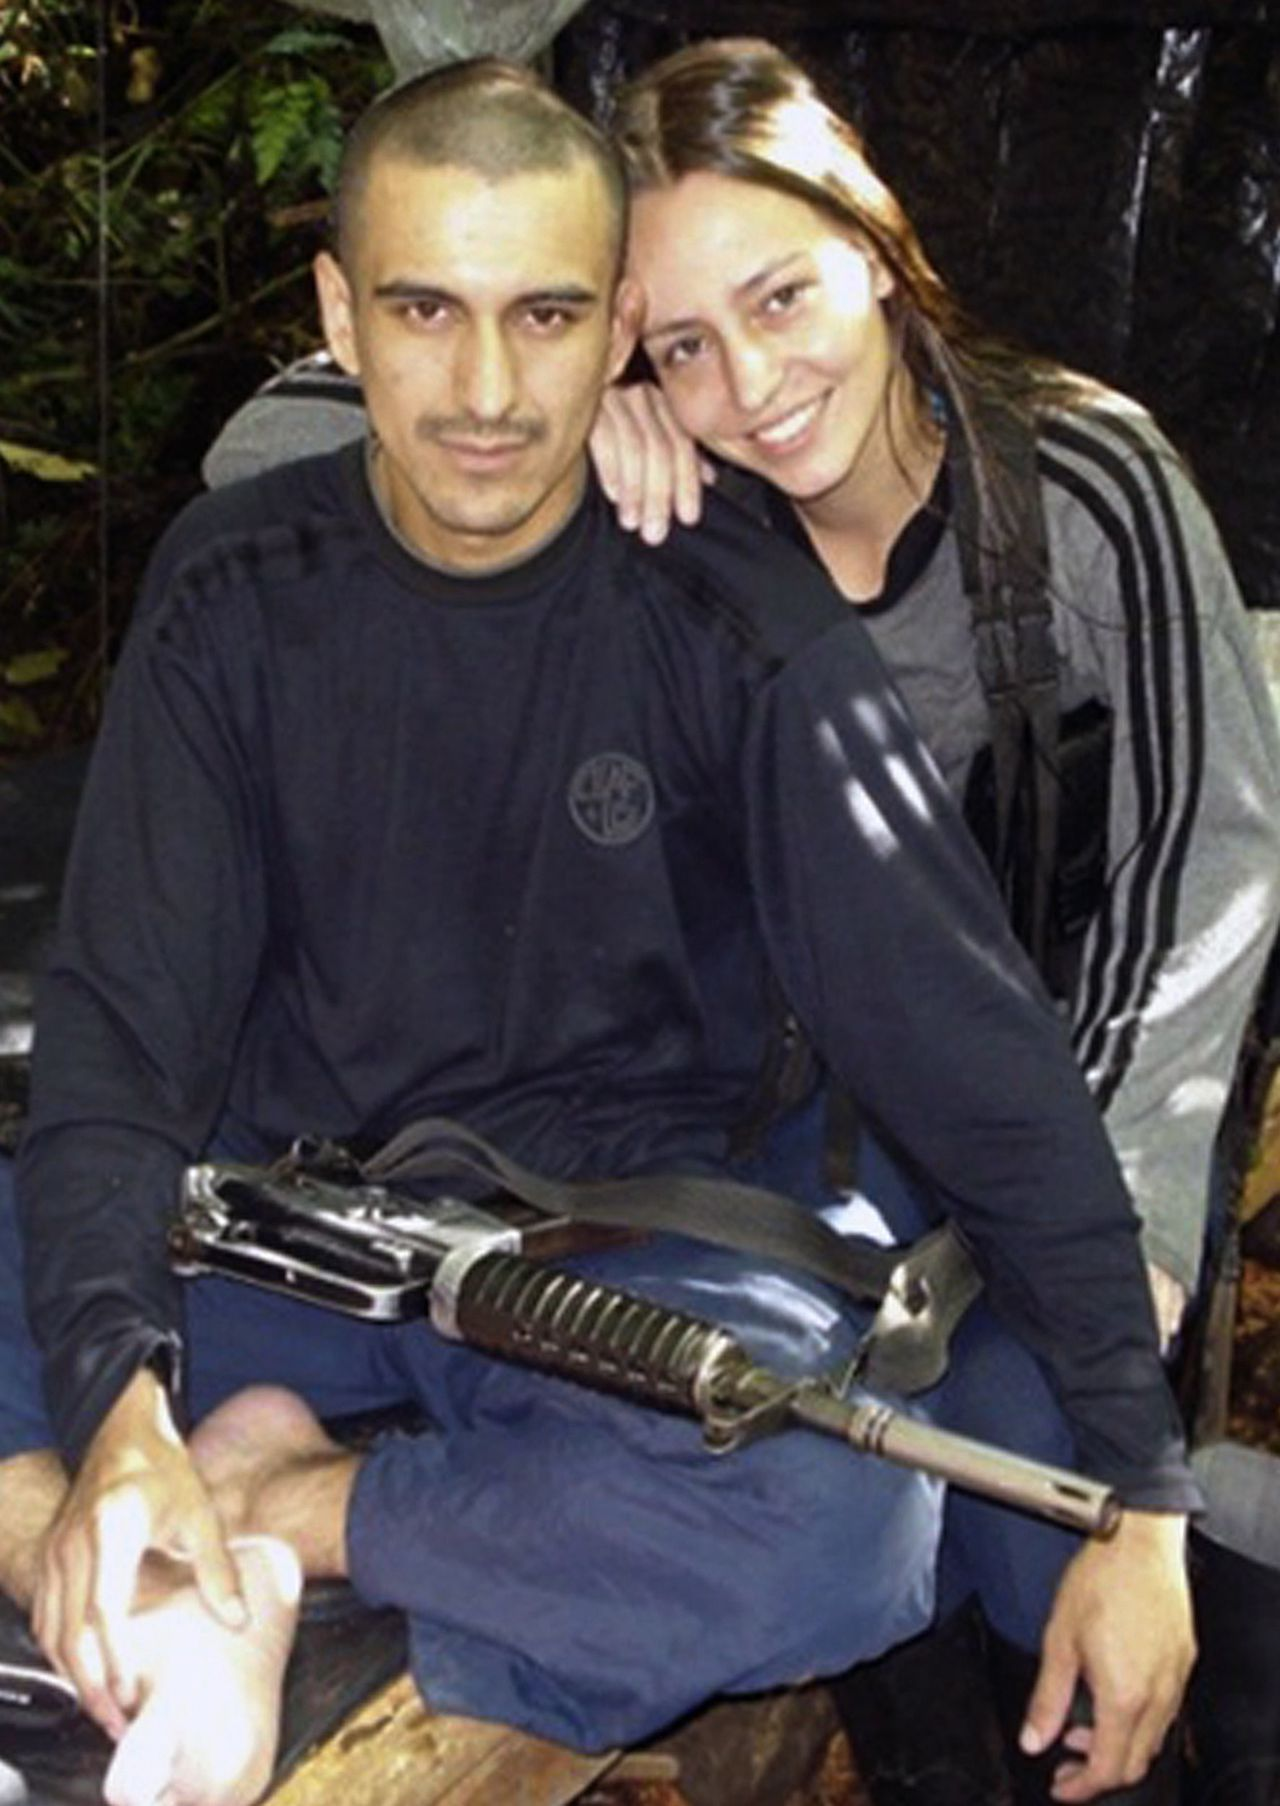 (FILE) Undated handout picture released by Colombia's presidential press service in 2010 showing Dutch citizen Tanja Nijmeijer (R), an alleged member of the Marxist guerilla group Revolutionary Armed Forces of Colombia (FARC) since 2002, posing at a guerilla camp in the jungle of Colombia. A peace dialogue between Colombia's FARC rebels and the government, which aims to end the country's decades-long conflict, will finally start in Oslo on October 18, the Colombian president's office said. Earlier this month Colombian press reports had suggested that the FARC's departure had been delayed partly by the group's bid to add a Dutch guerrilla, 34-year-old Tanja Nijmeijer, to their delegation for the talks. The Dutch national is alleged to have joined the FARC in the past decade during her studies in Colombia and has been accused of taking part in 2003 in the kidnap of three US citizens working for a security firm. AFP PHOTO/HO